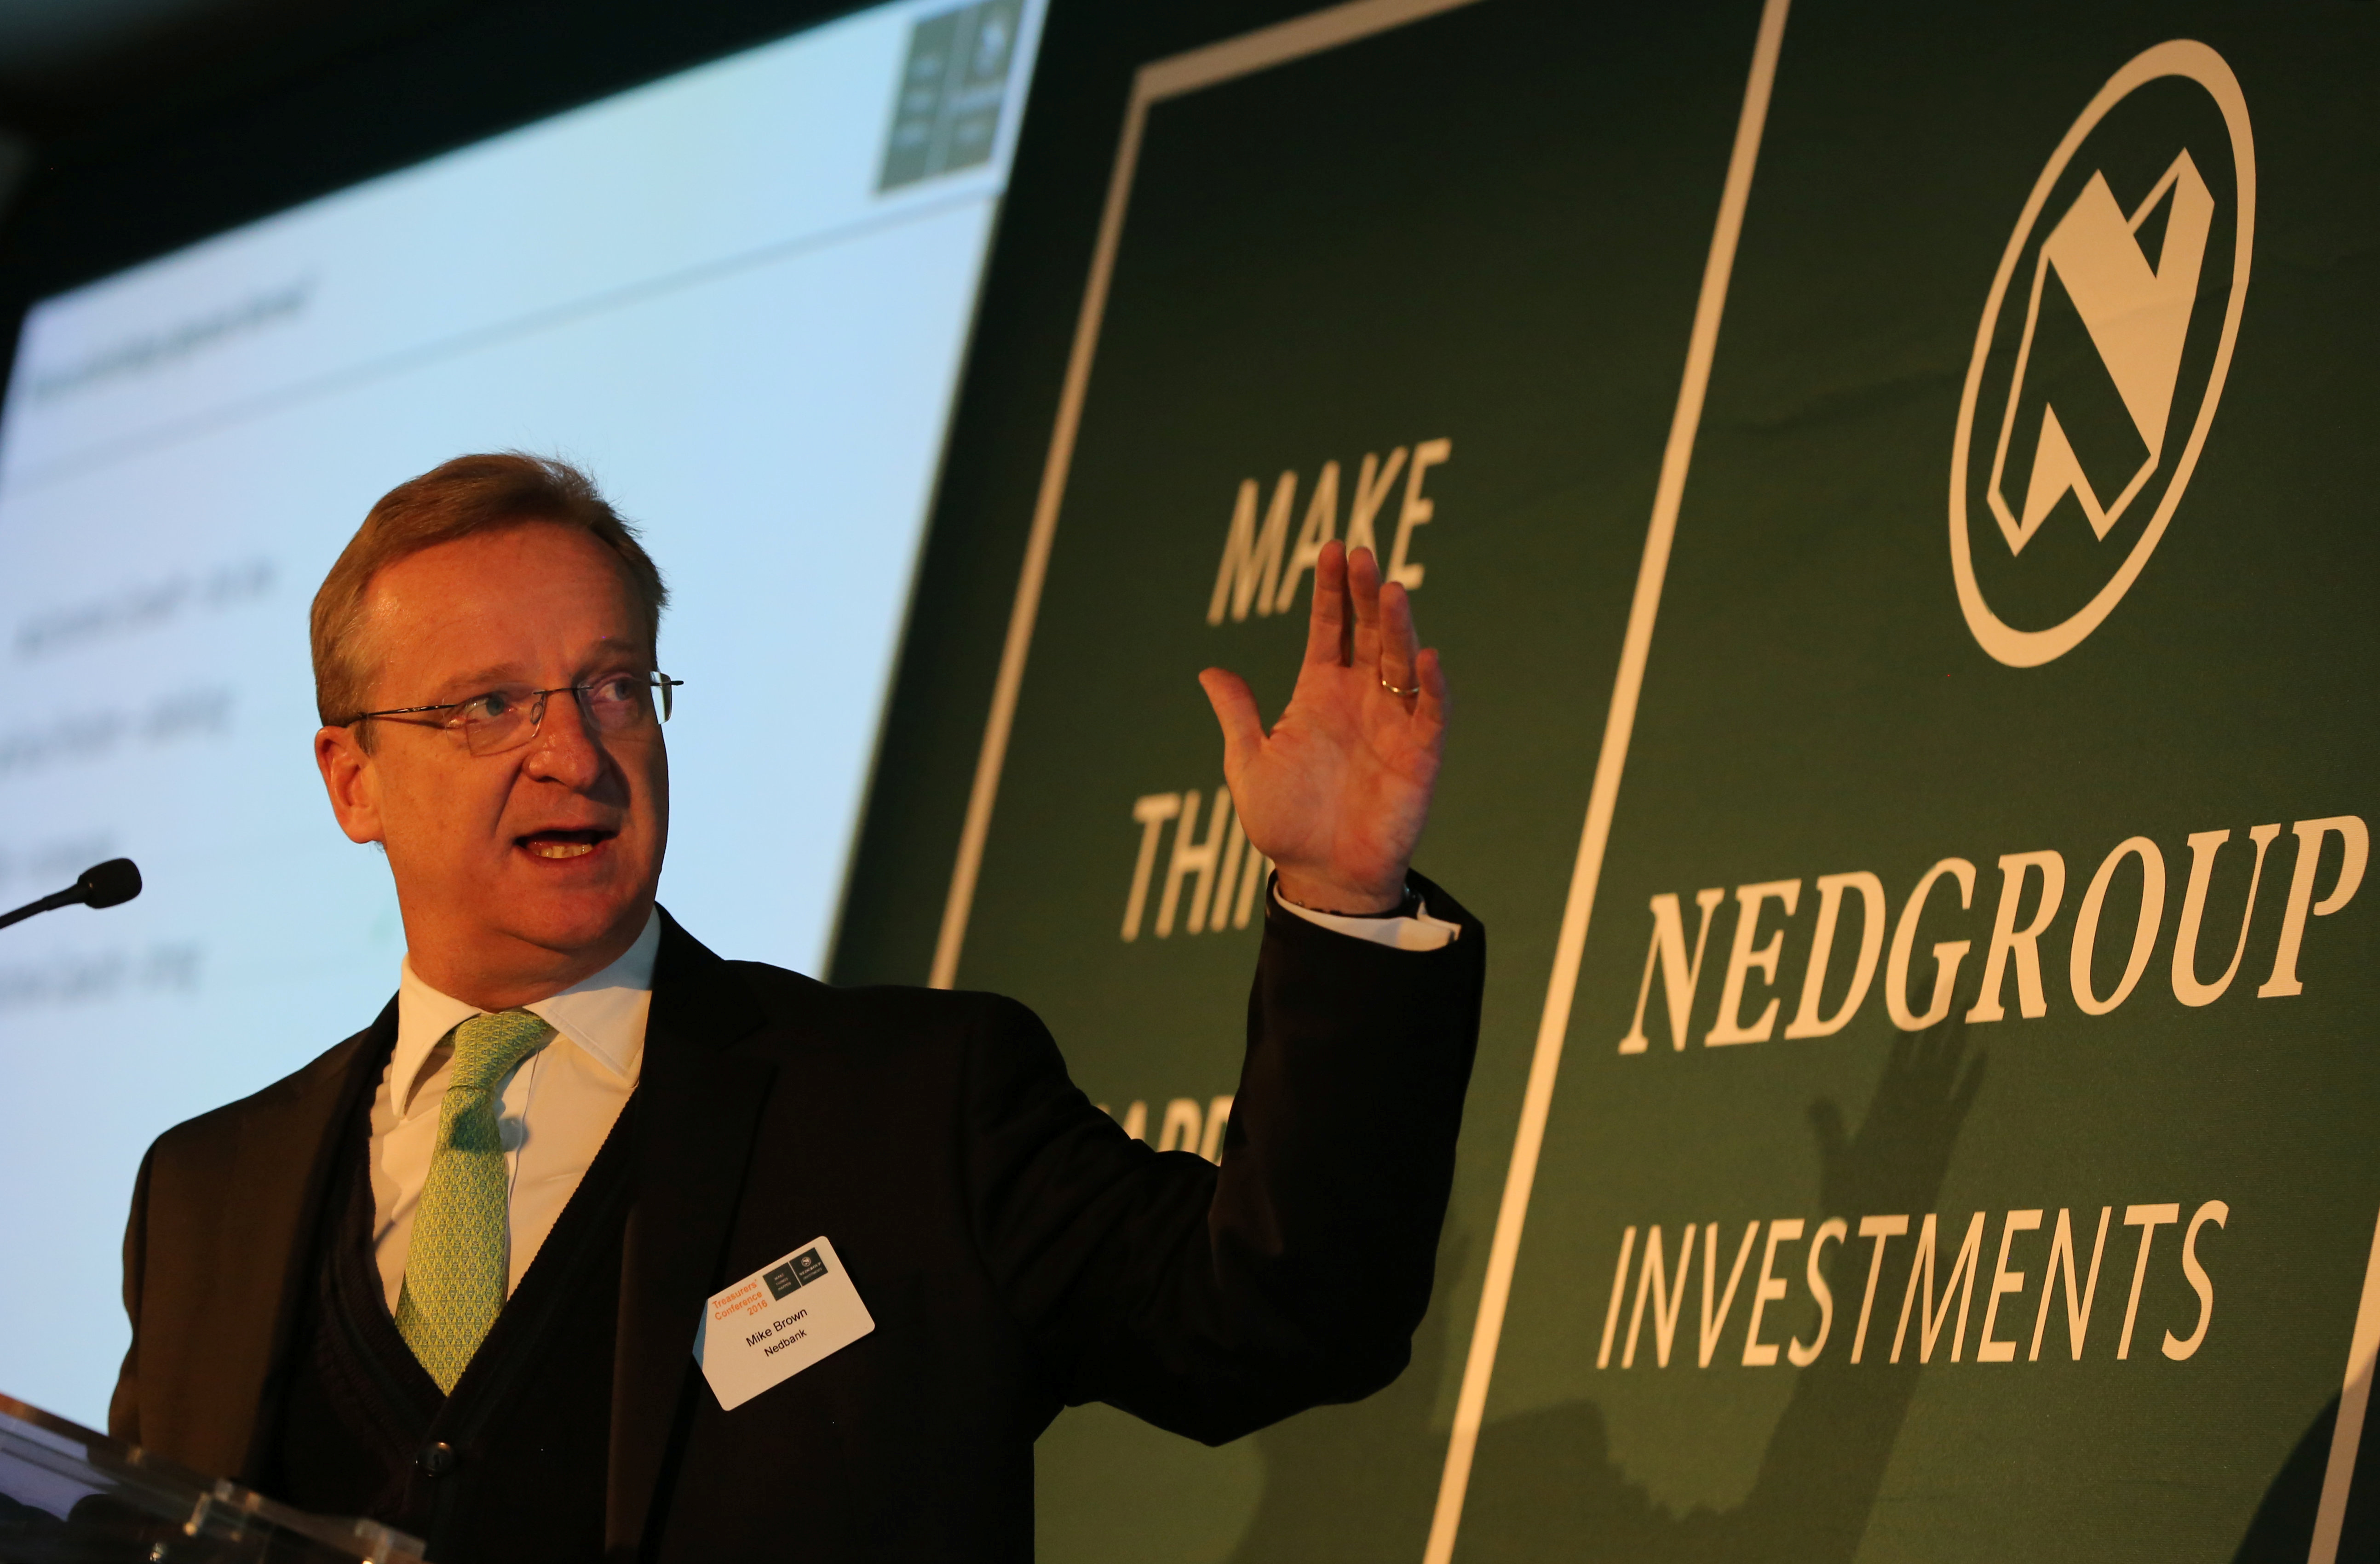 Mike Brown,Chief Executive Officer of Nedbank Group Limited gestures during  their annual Treasurer's Conference in Johannesburg South Africa , May 26,2016. REUTERS/Siphiwe Sibeko